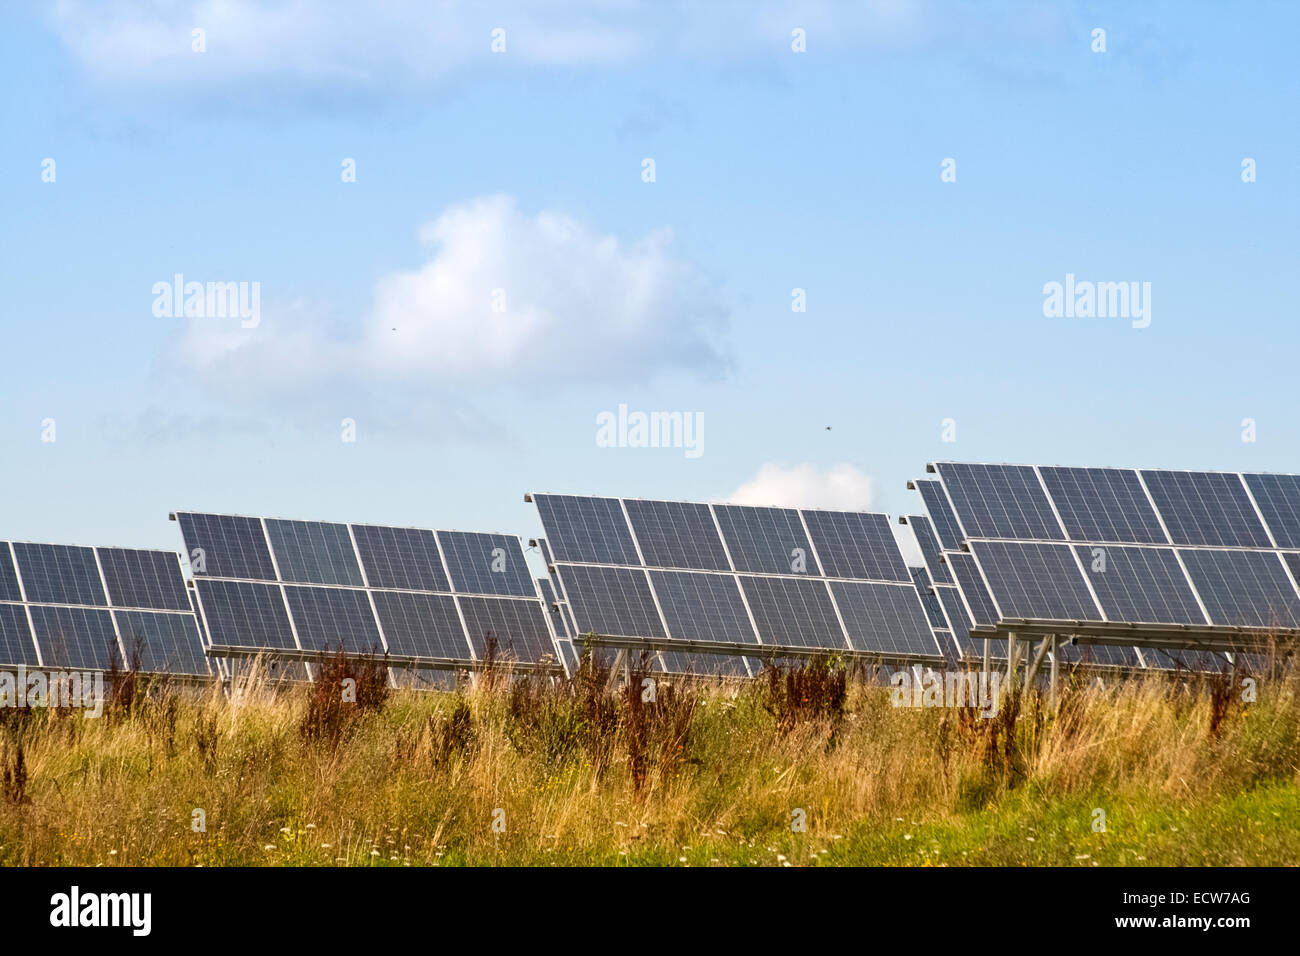 Solar cells of a photovoltaic system to generate energy through solar energy - Stock Image